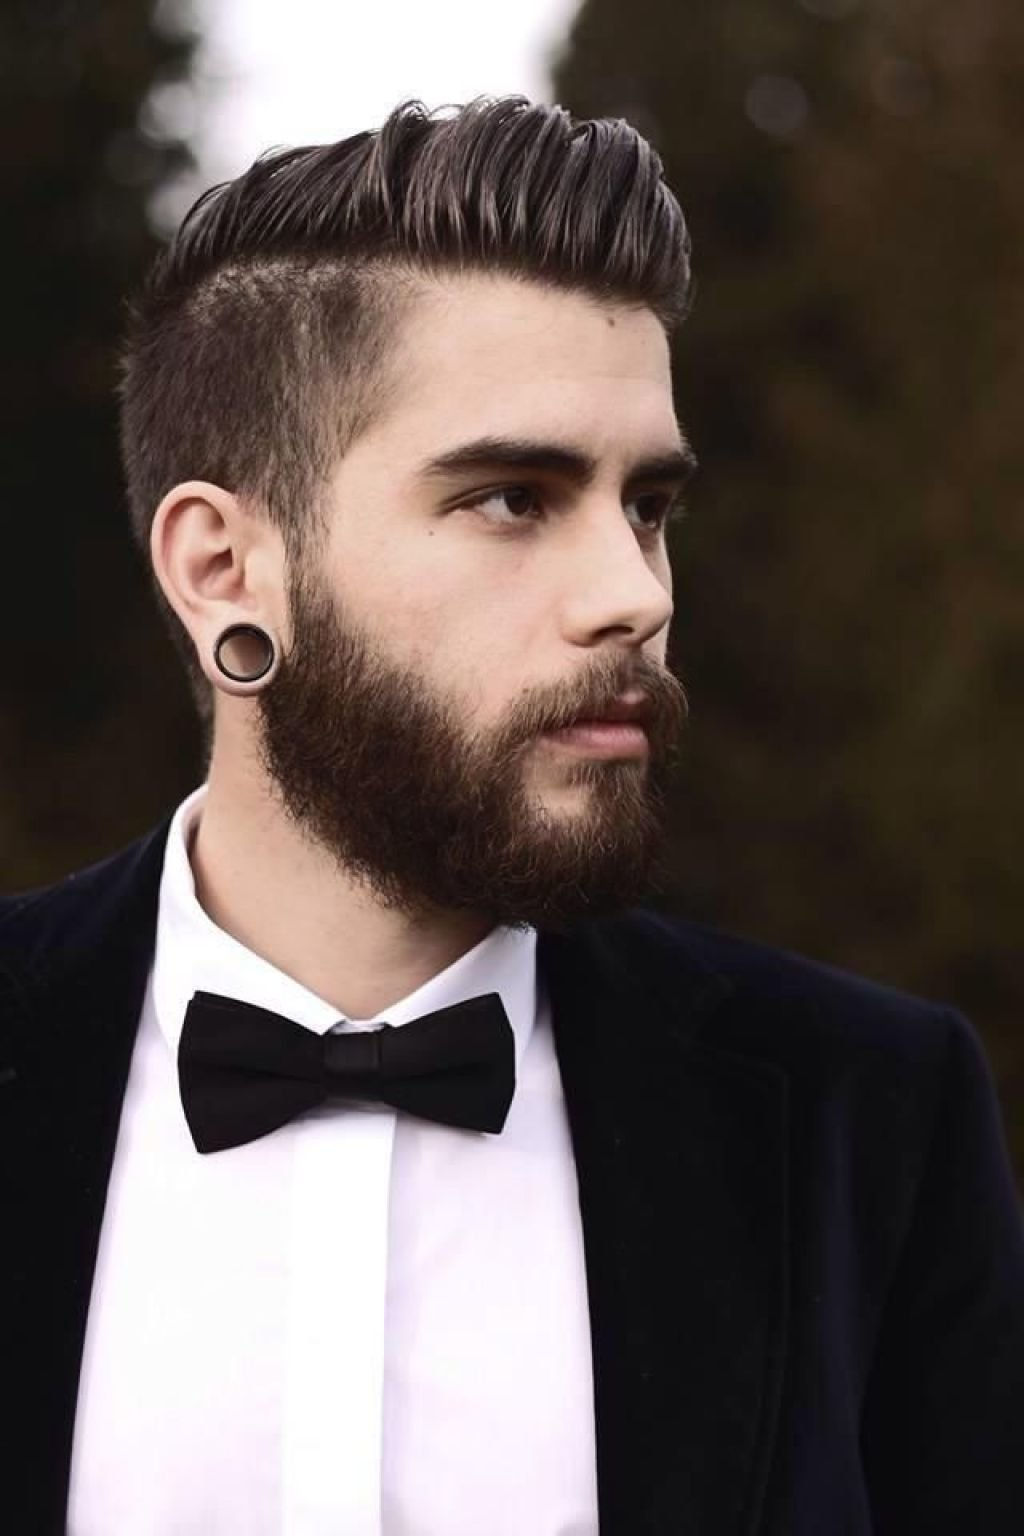 The Best 12 Best Stylish Hipster Hairstyles For Men Mens Craze Pictures